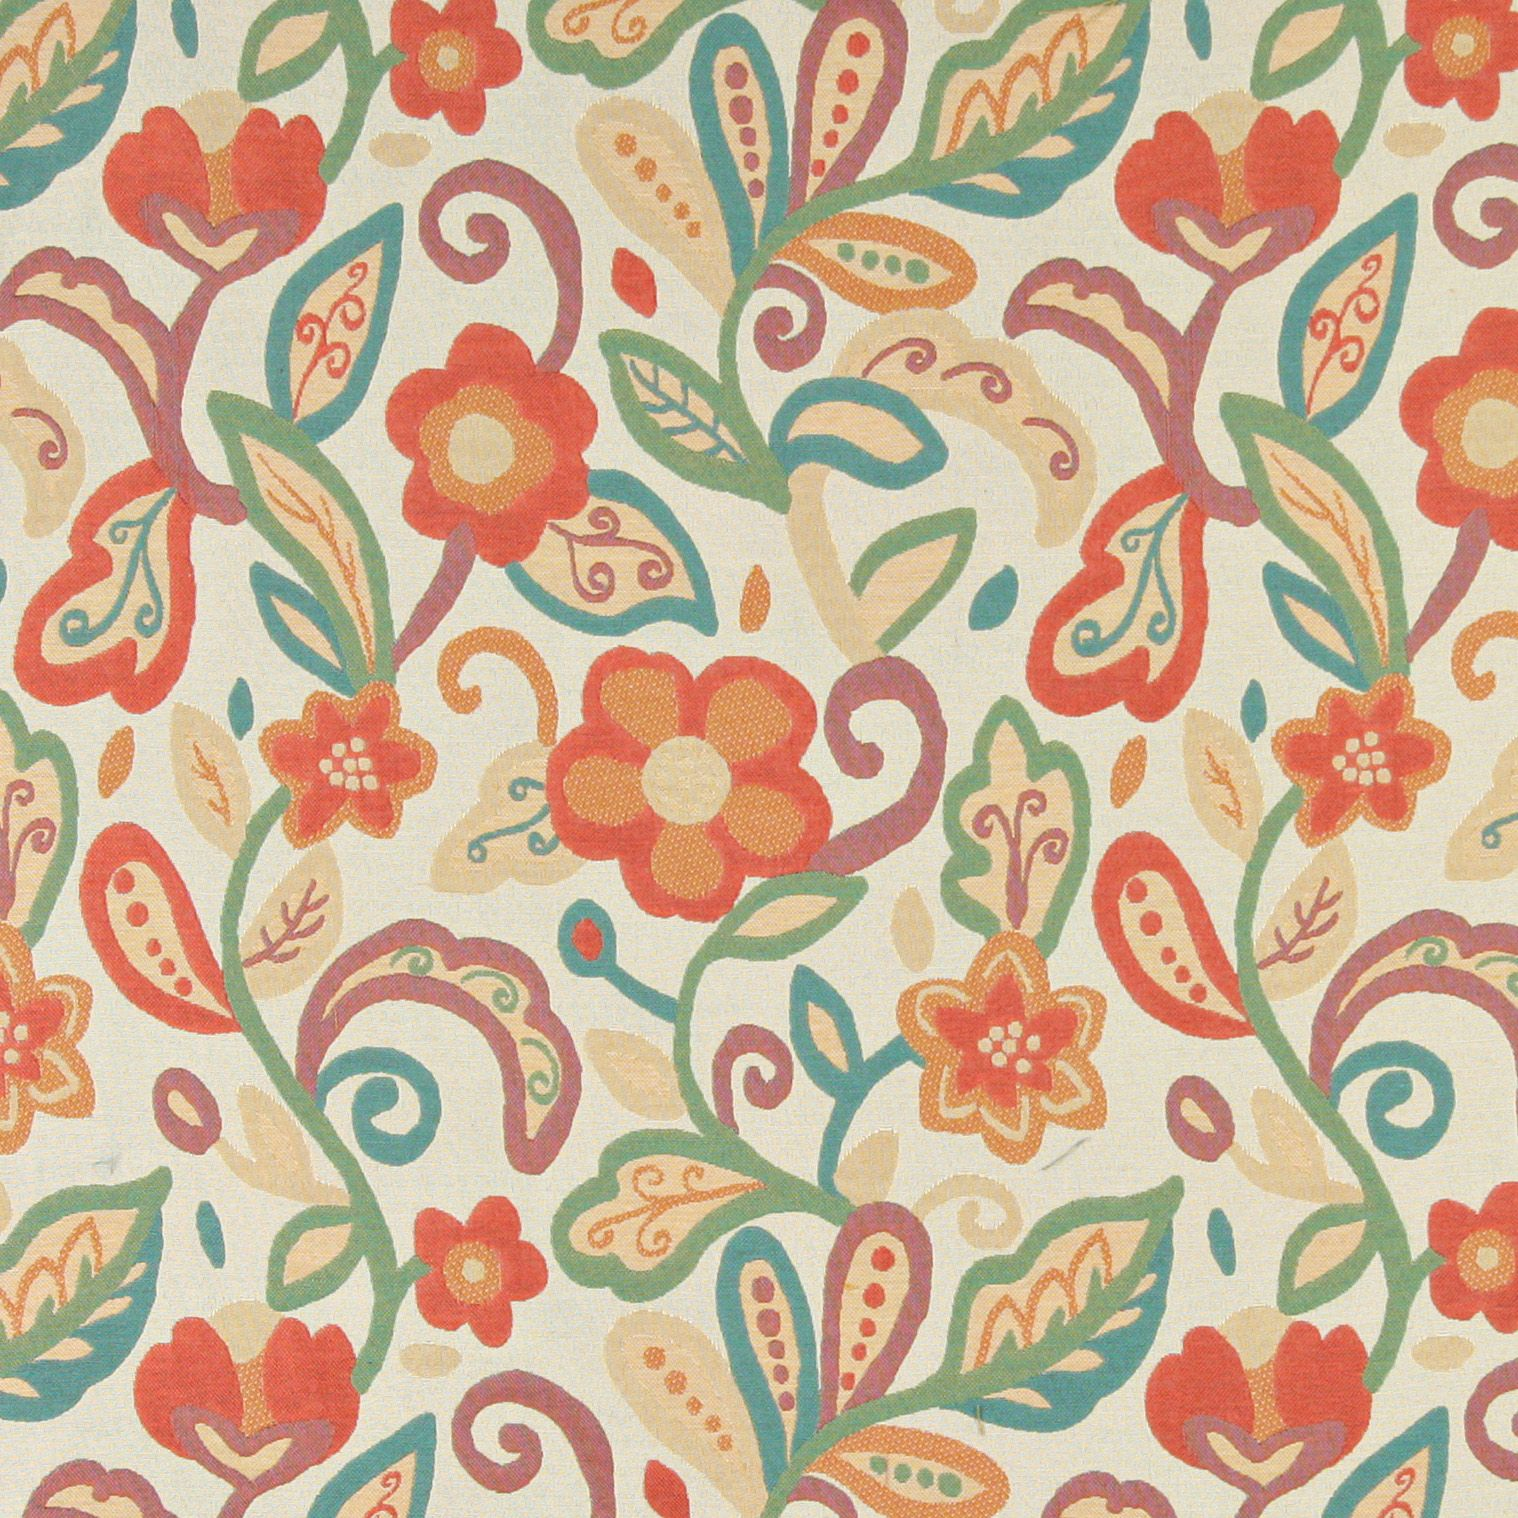 Ordinaire Aqua Red On Beige Contemporary Artistic Flower With Leaf Pattern Brocade  Upholstery Fabric By The Yard